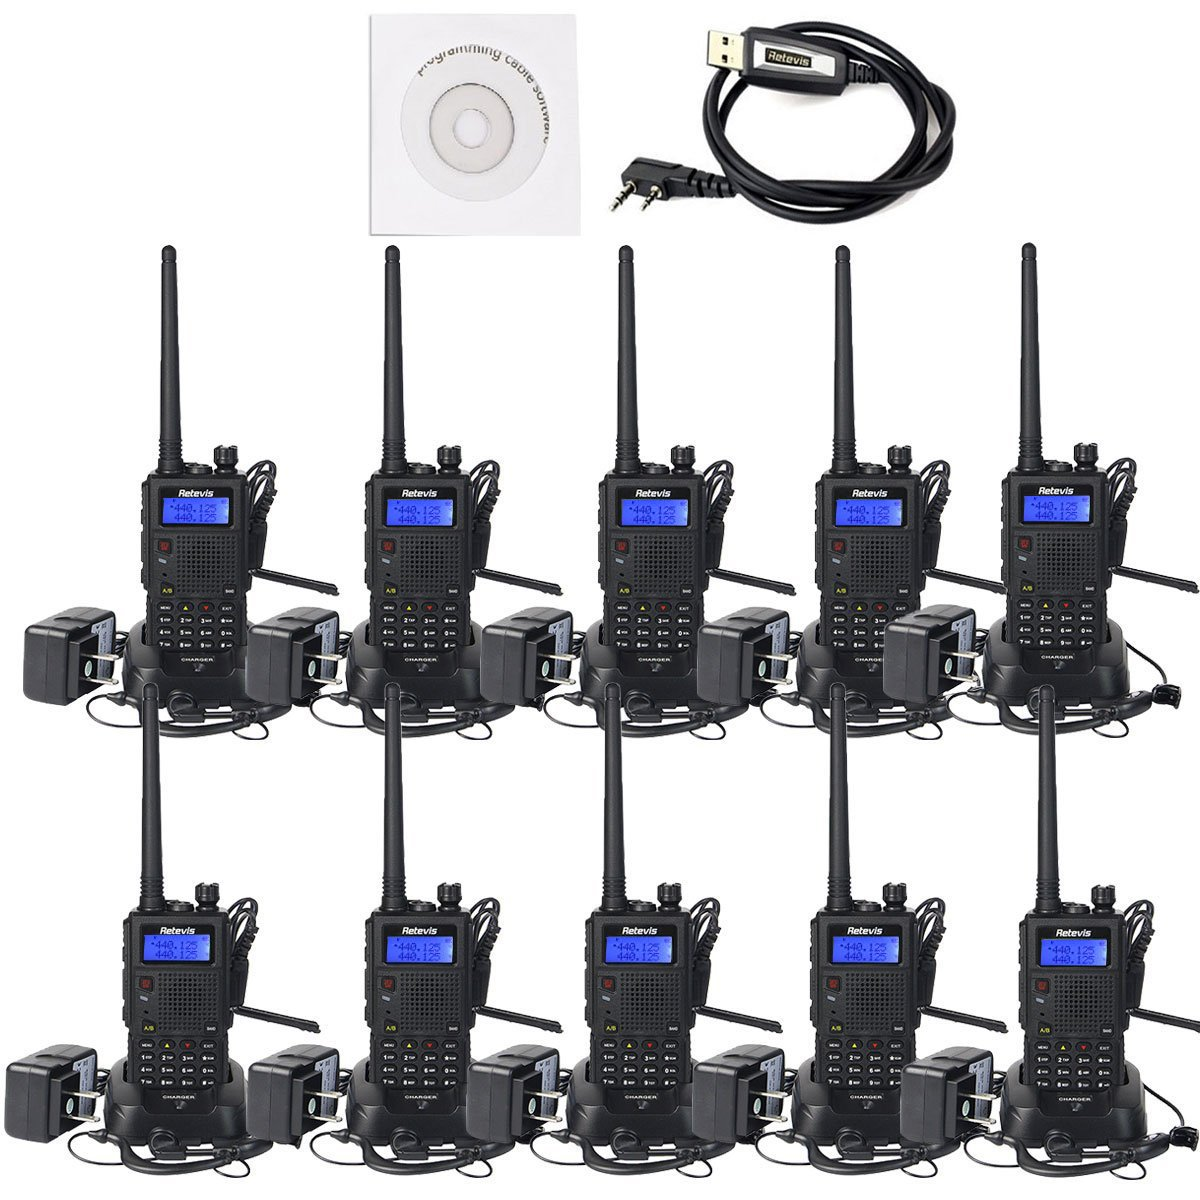 Retevis RT5 Dual Band Two-Way Radio Transceiver 7W UHF VHF 136-174/400-520MHz 128 CH VOX DTMF FM Radio 1750Hz Walkie Talkies (10 Pack,Black)